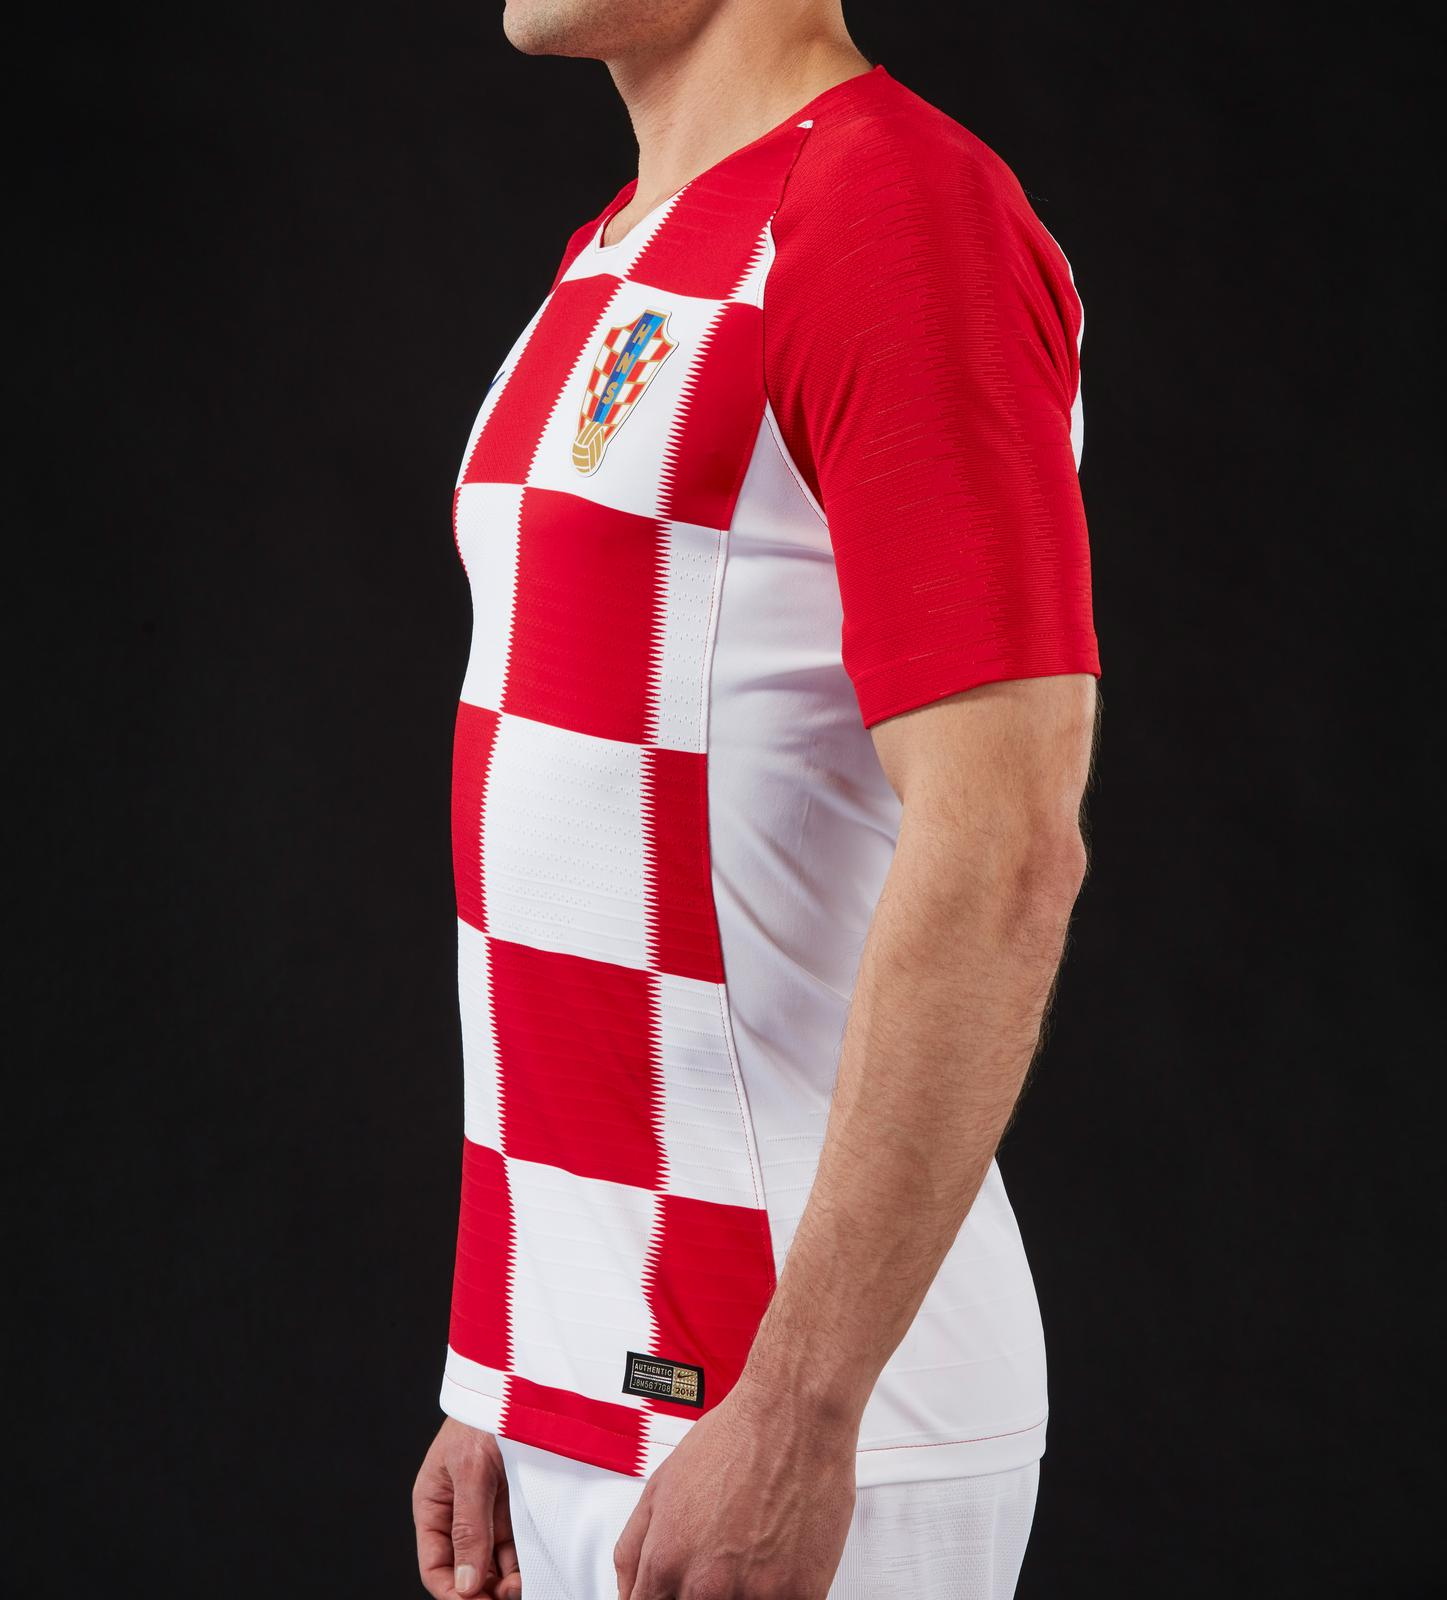 premium selection ee07c a8ec2 Croatia 2018 World Cup Nike Home Kit | 17/18 Kits | Football ...